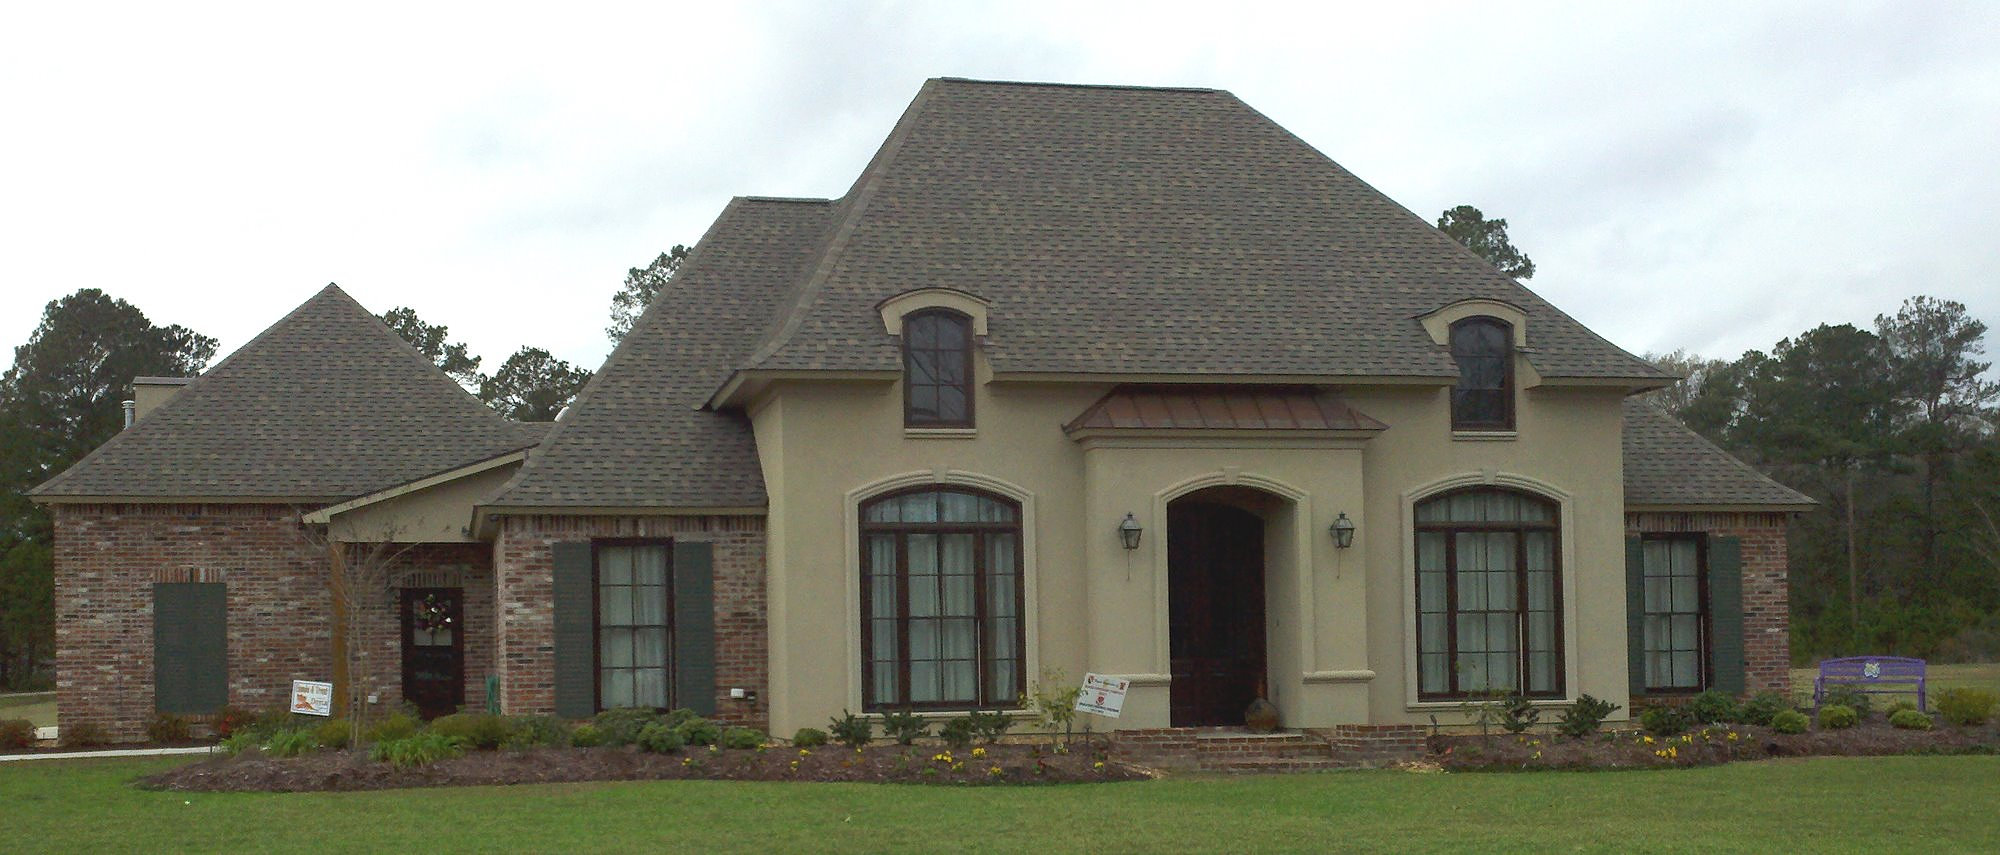 madden home design - acadian house plans, french country house